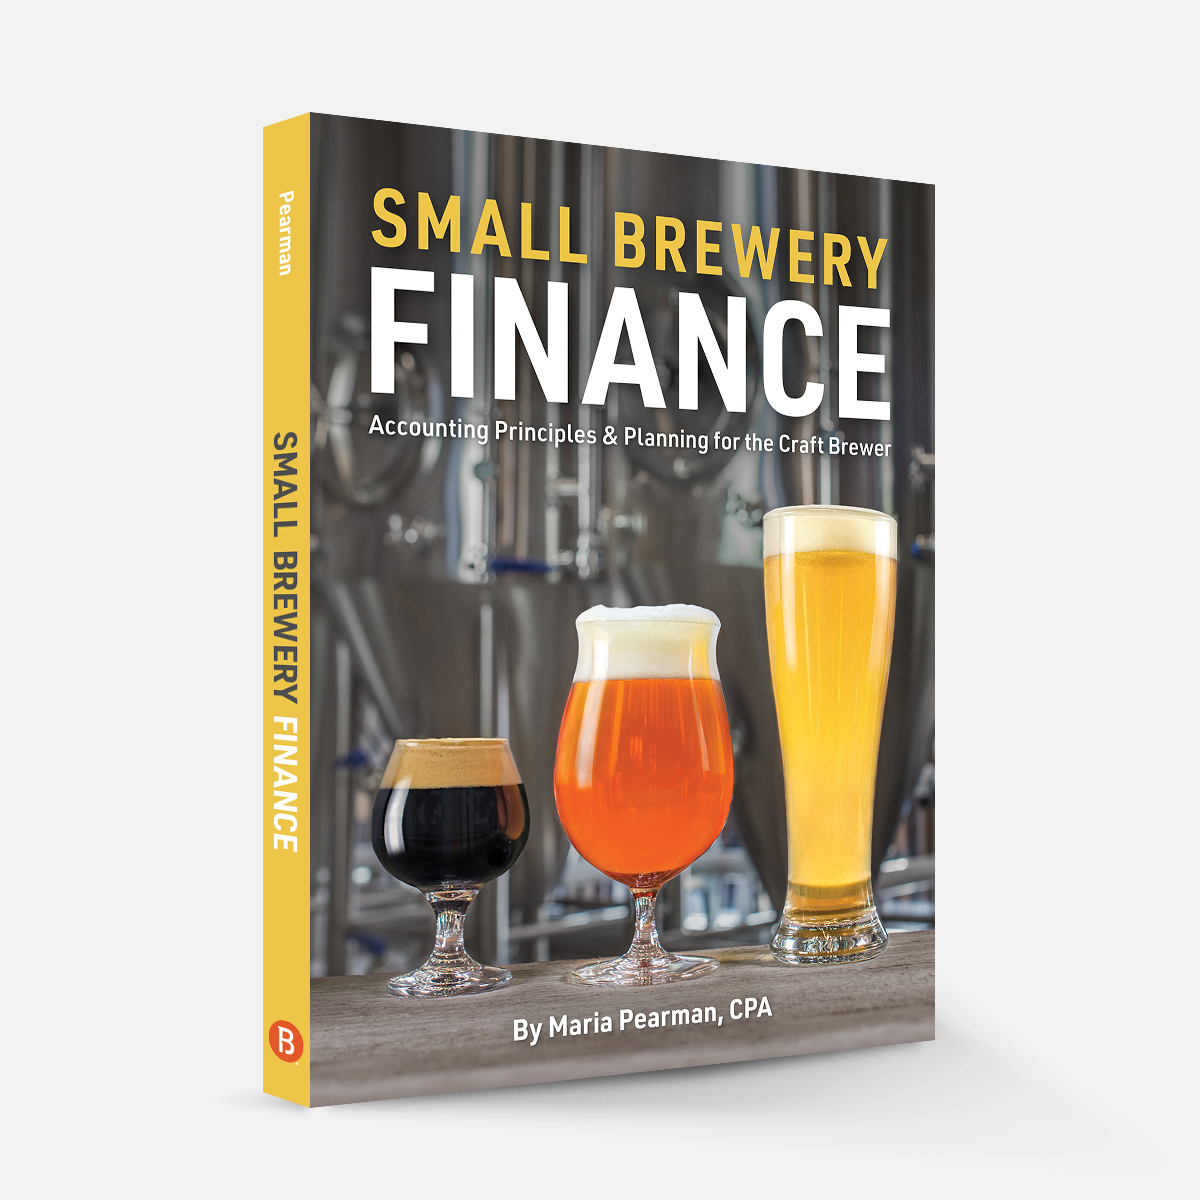 Small Brewery Finance - Accounting Principles and Planning for the Craft Brewer by Maria Pearman Book Spine